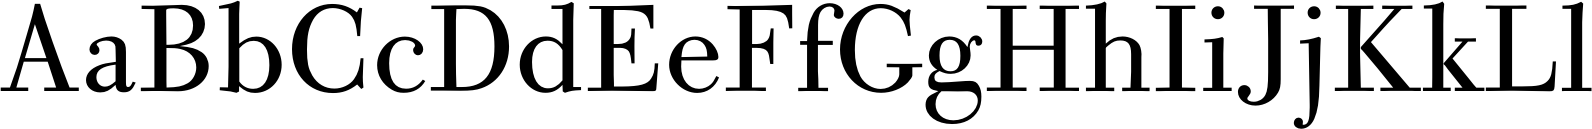 Bodoni Old Fashion URW Font